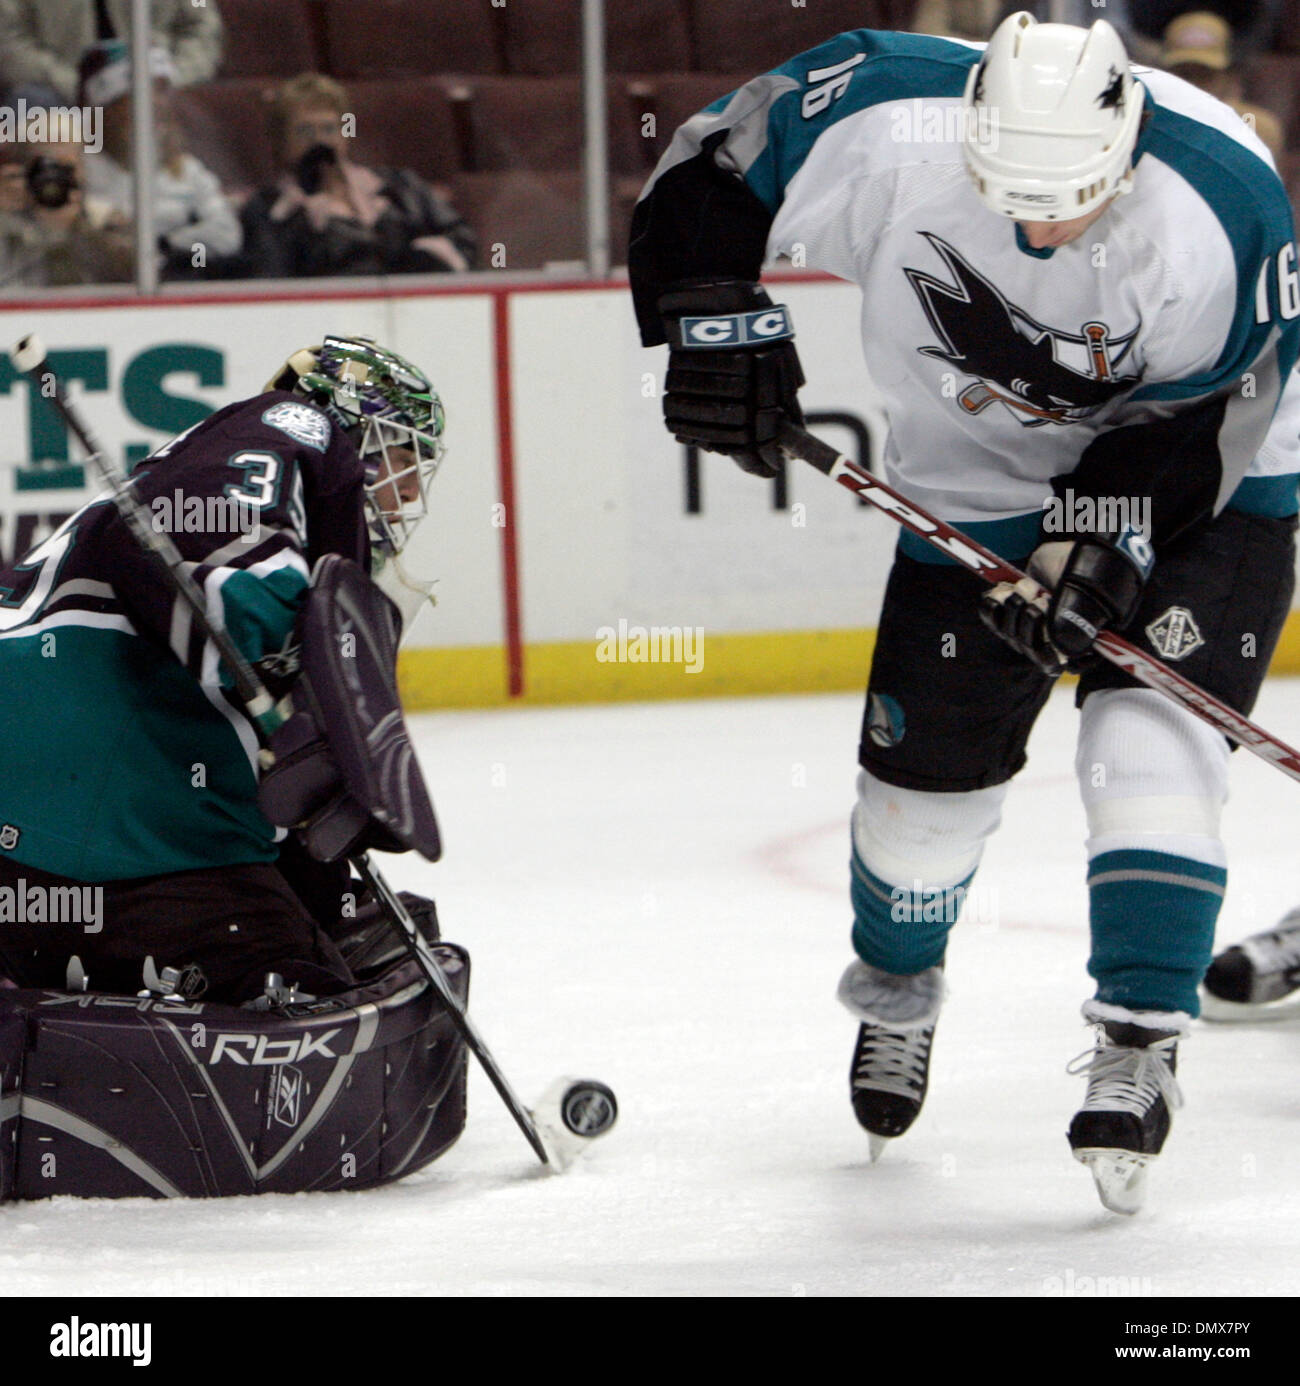 Dec 18, 2005; Anaheim, CA, USA; Mighty Ducks  goalie (35) Jean-Sebastian Giguere (R) makes a save against the San Jose Sharks (16) Mark Smith  during the first period of their game at the ArrowHead Pound in Anaheim , California. Mandatory Credit: Photo by Armando Arorizo/ZUMA Press. (©) Copyright 2005 by Armando Arorizo - Stock Image